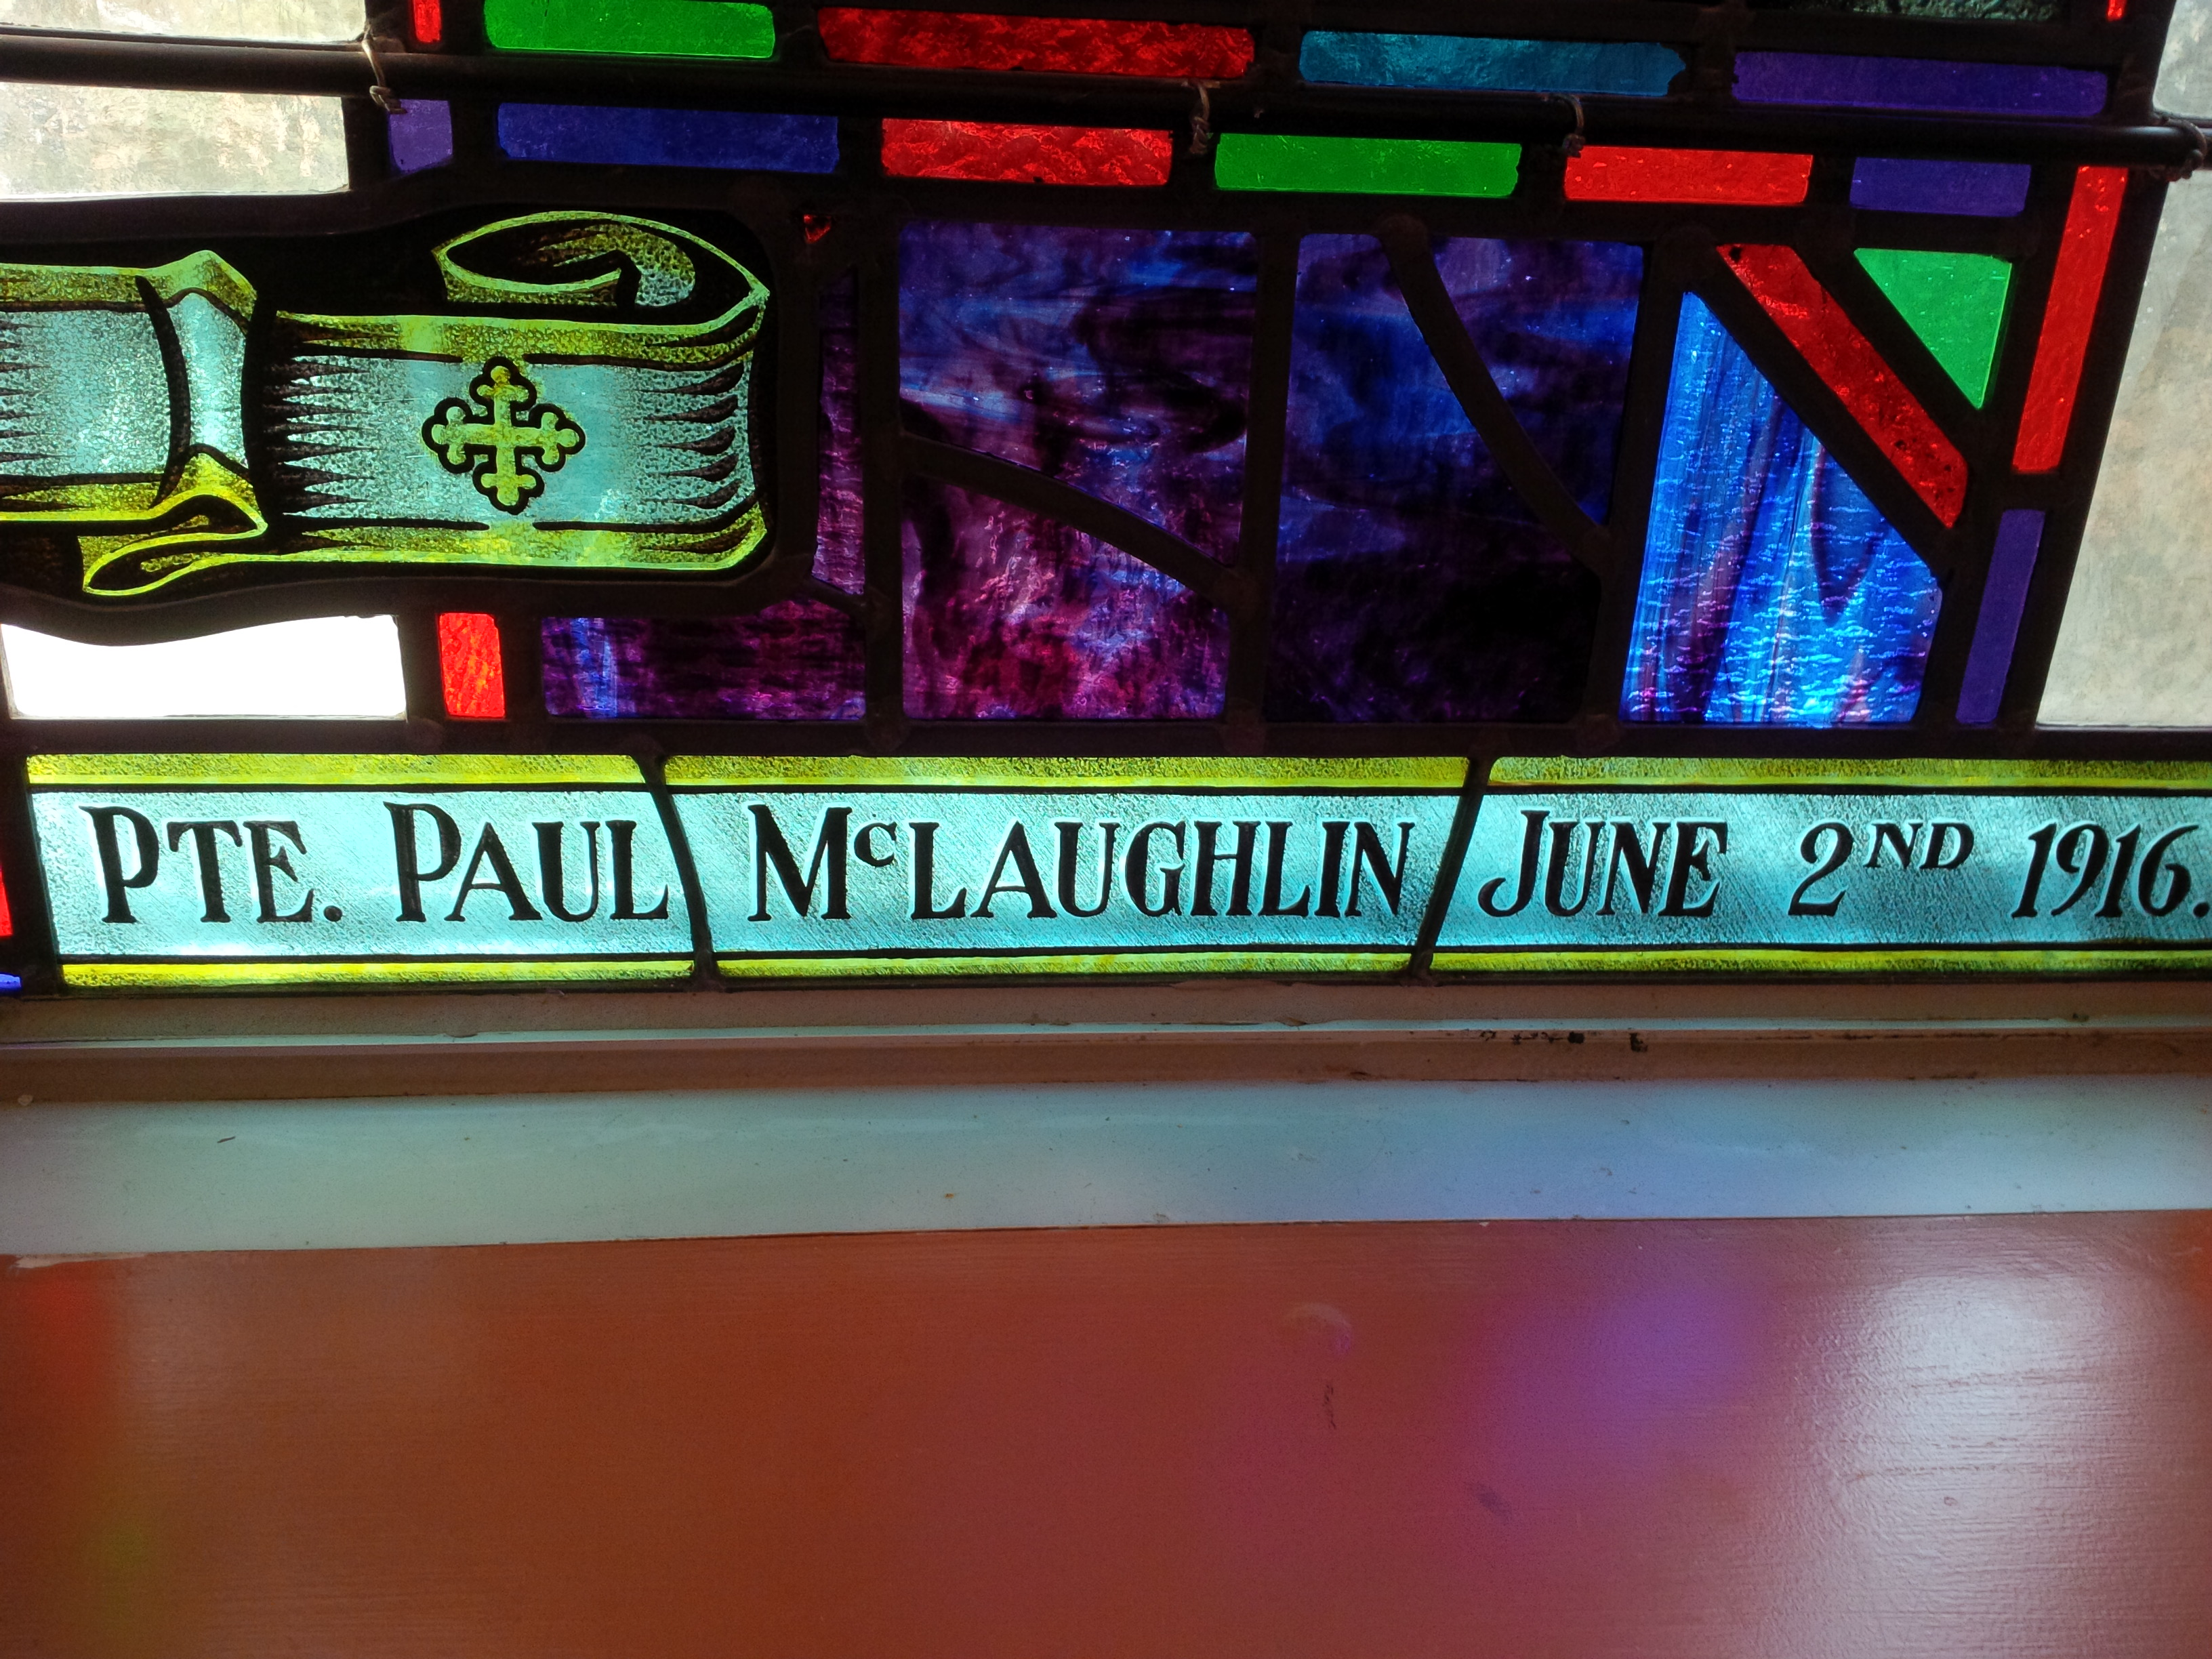 Memorial Stained Glass– Pvt. Paul Mclaughlin's name on stain glass window in Sts. Cyril and Methodius Roman Catholic Church in Mississauga, Ontario.  The stain glass was originally in St. Basil's Church in Toronto.